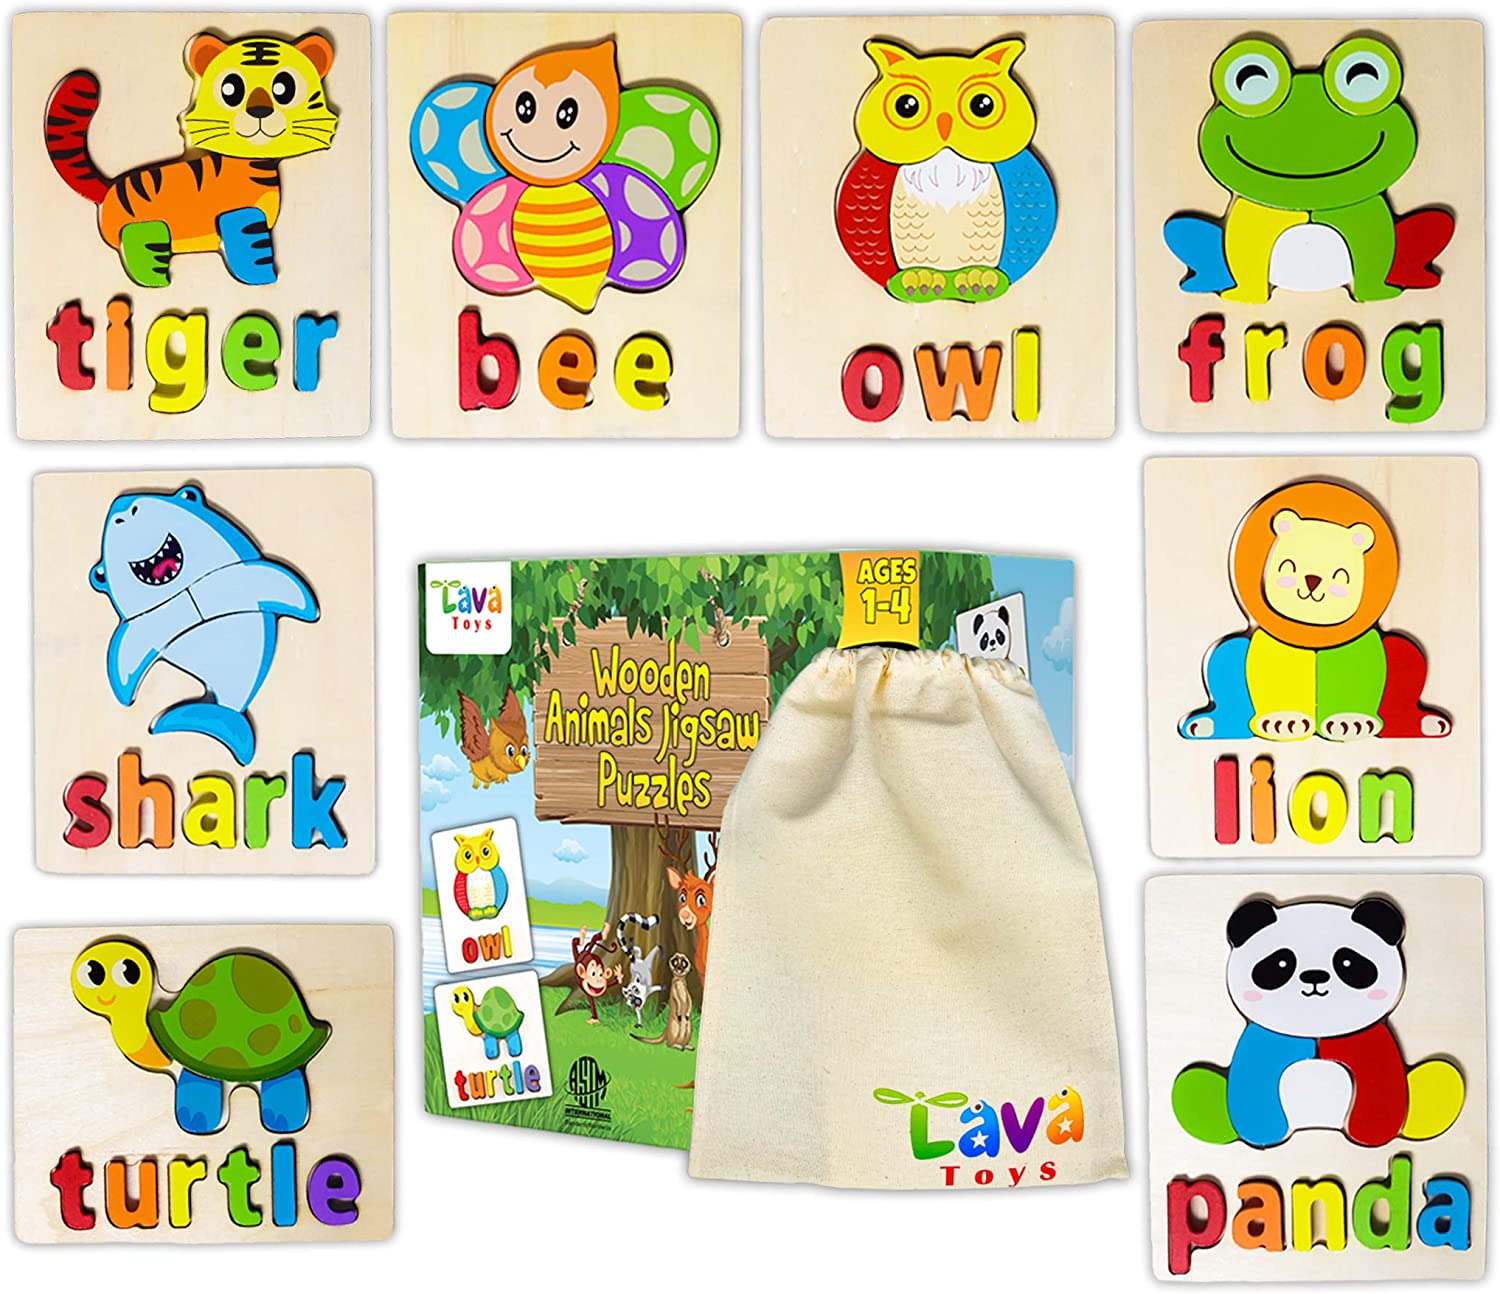 Lava Toys Wooden Animals Jigsaw Puzzles for Toddlers 1 2 3 4 Years Old Montessori Educational Toys for Baby Boys & Girls Gifts Box 8 Animals Patterns with Alphabet Spelling Stem Travel Toy